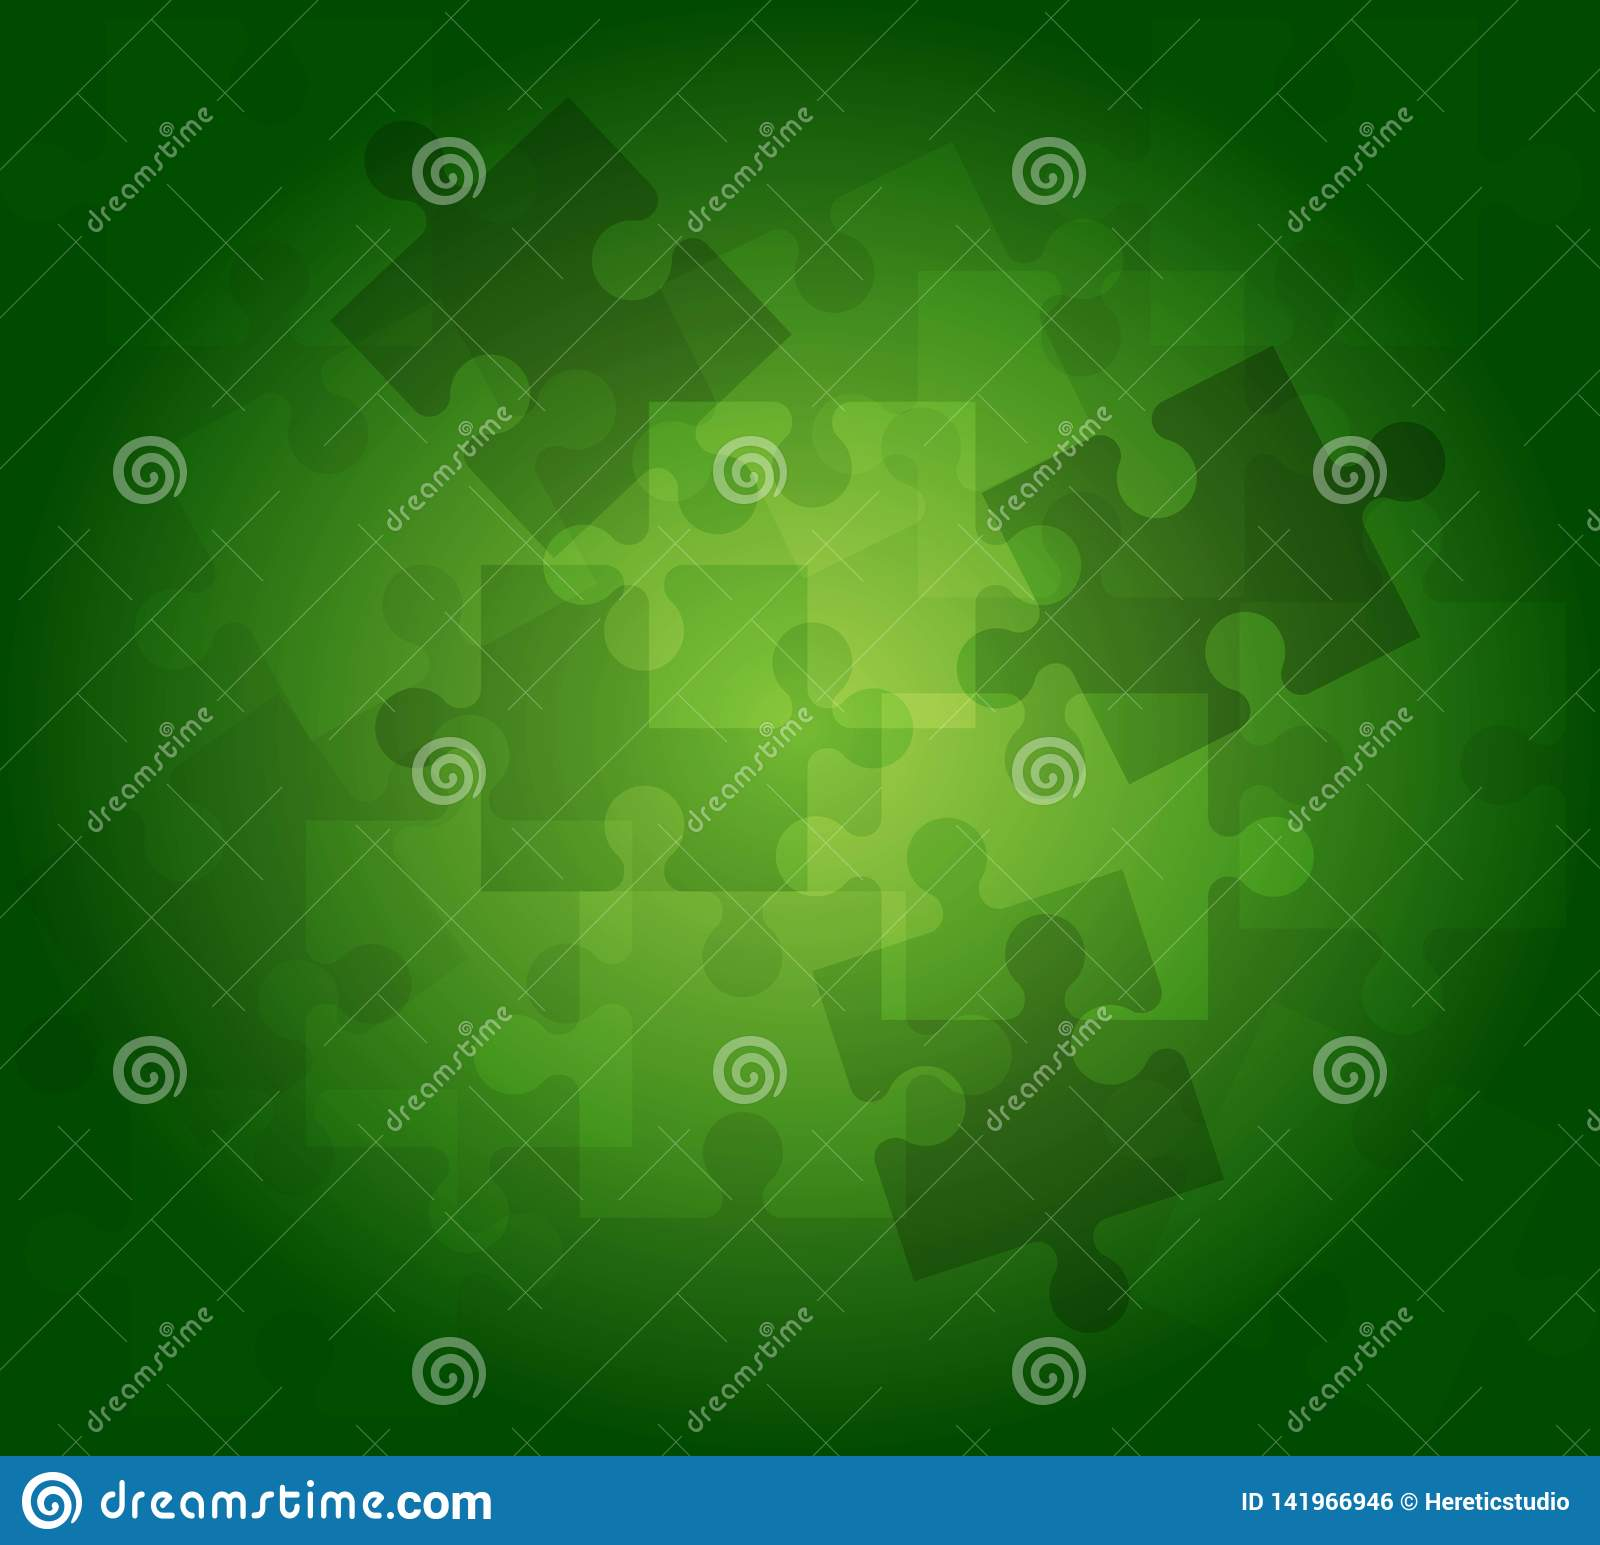 Abstract background puzzle pattern green color